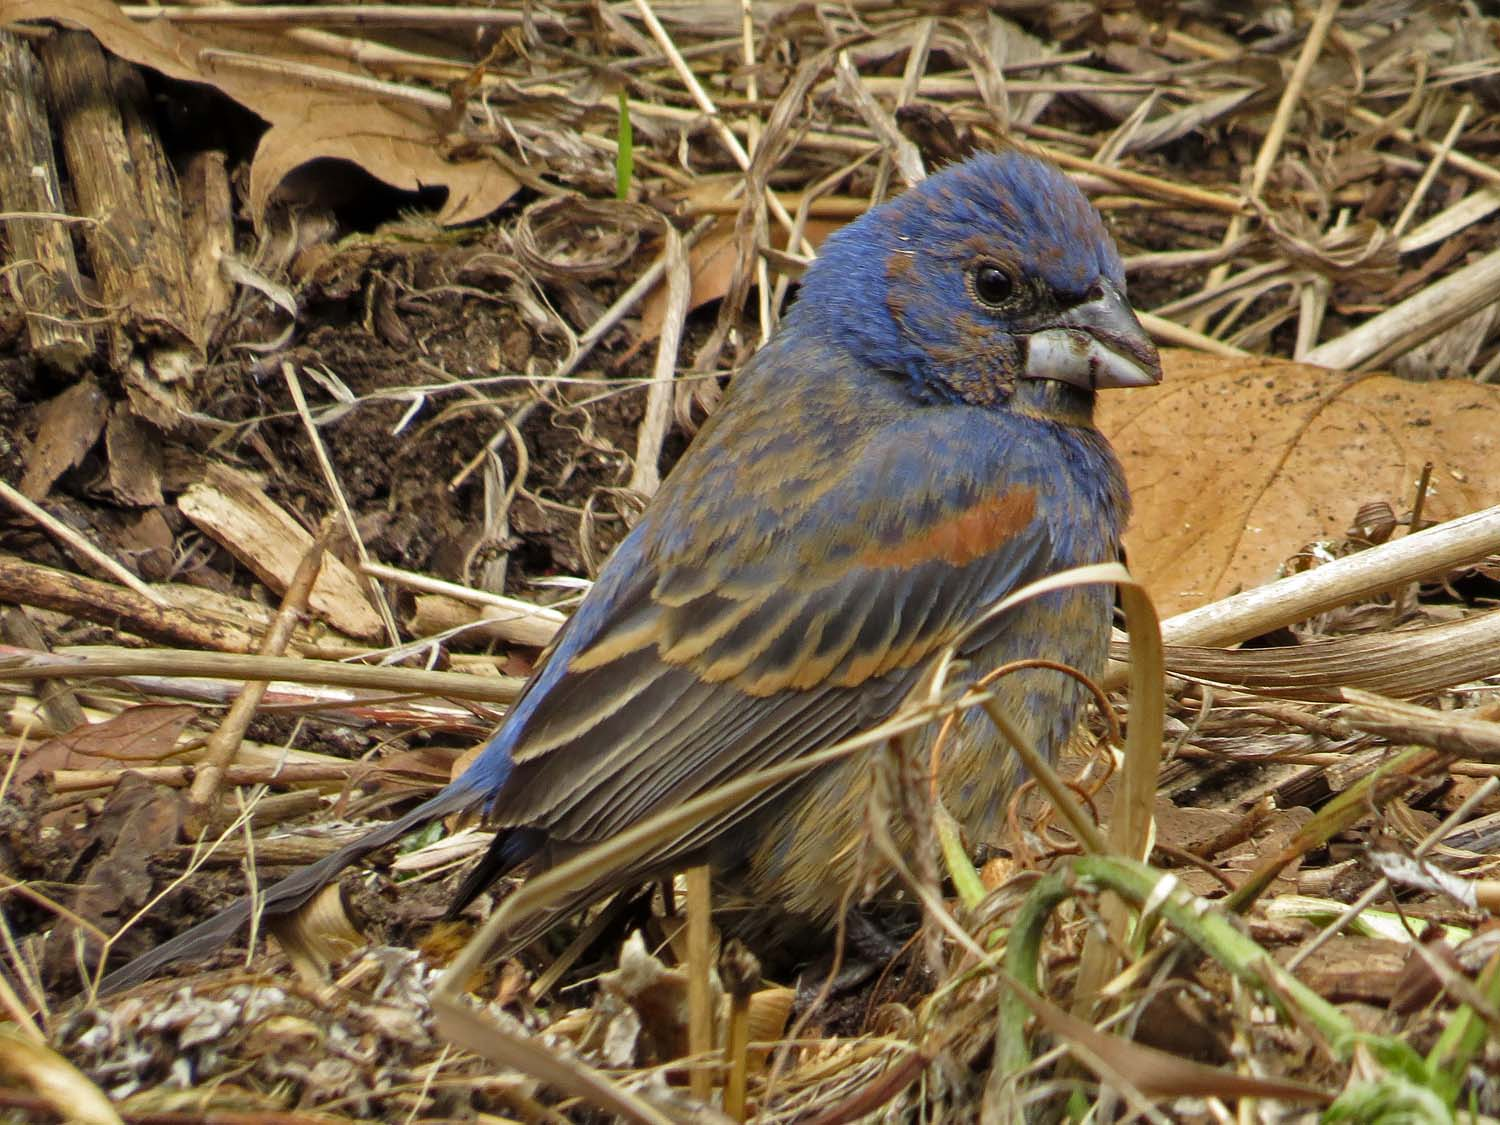 Blue grosbeak, Battery Park, May 11, 2017